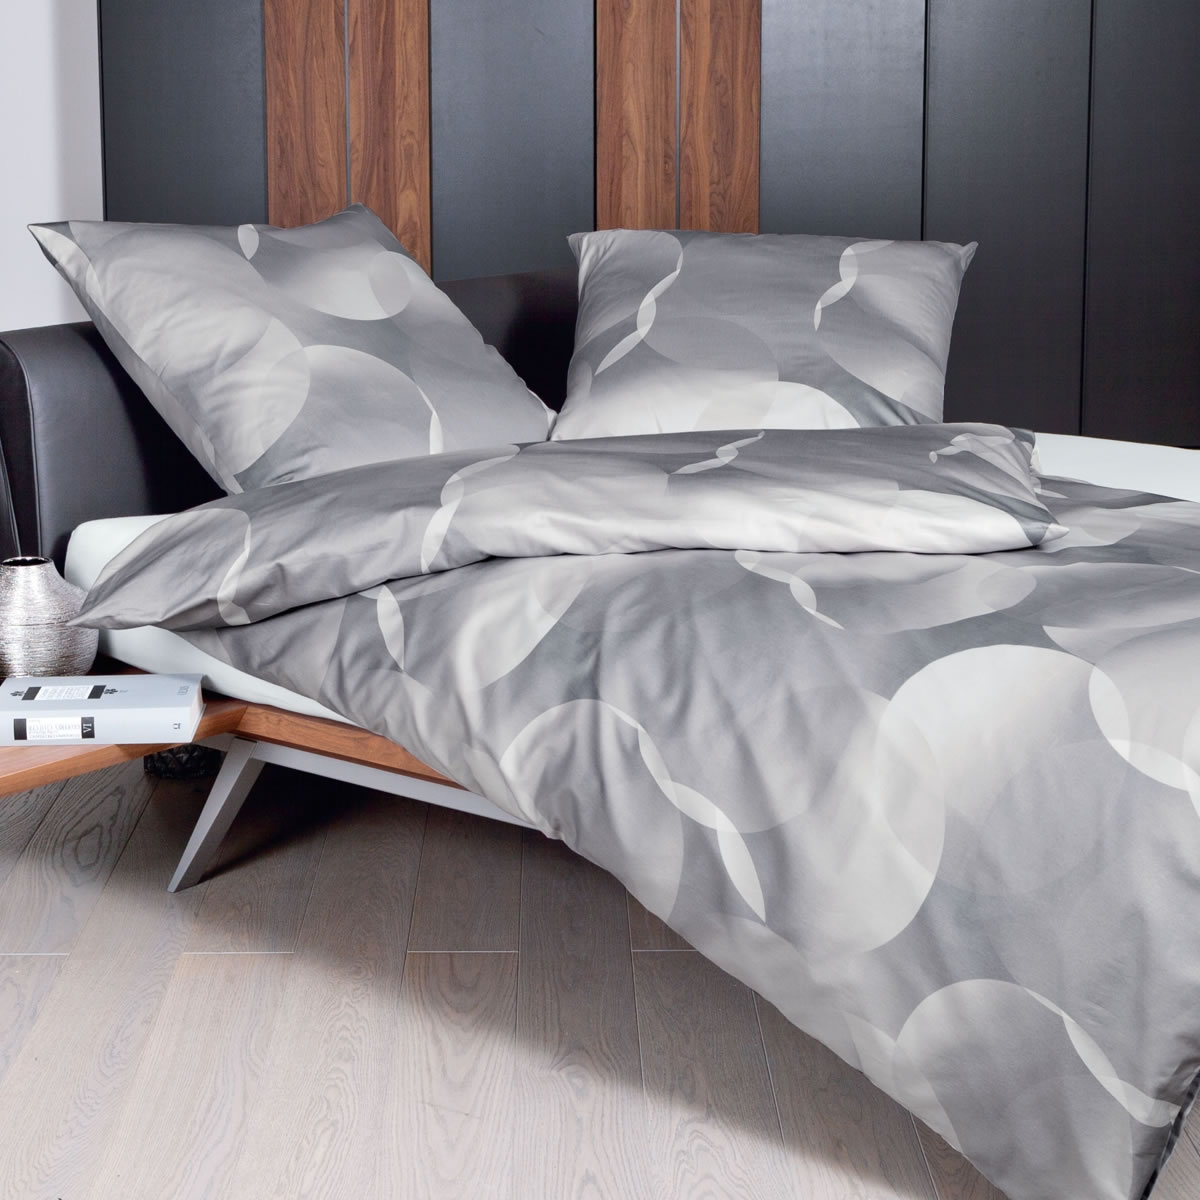 Janine Mako Satin Bettwasche Messina Design 43022 07 Atmosphare